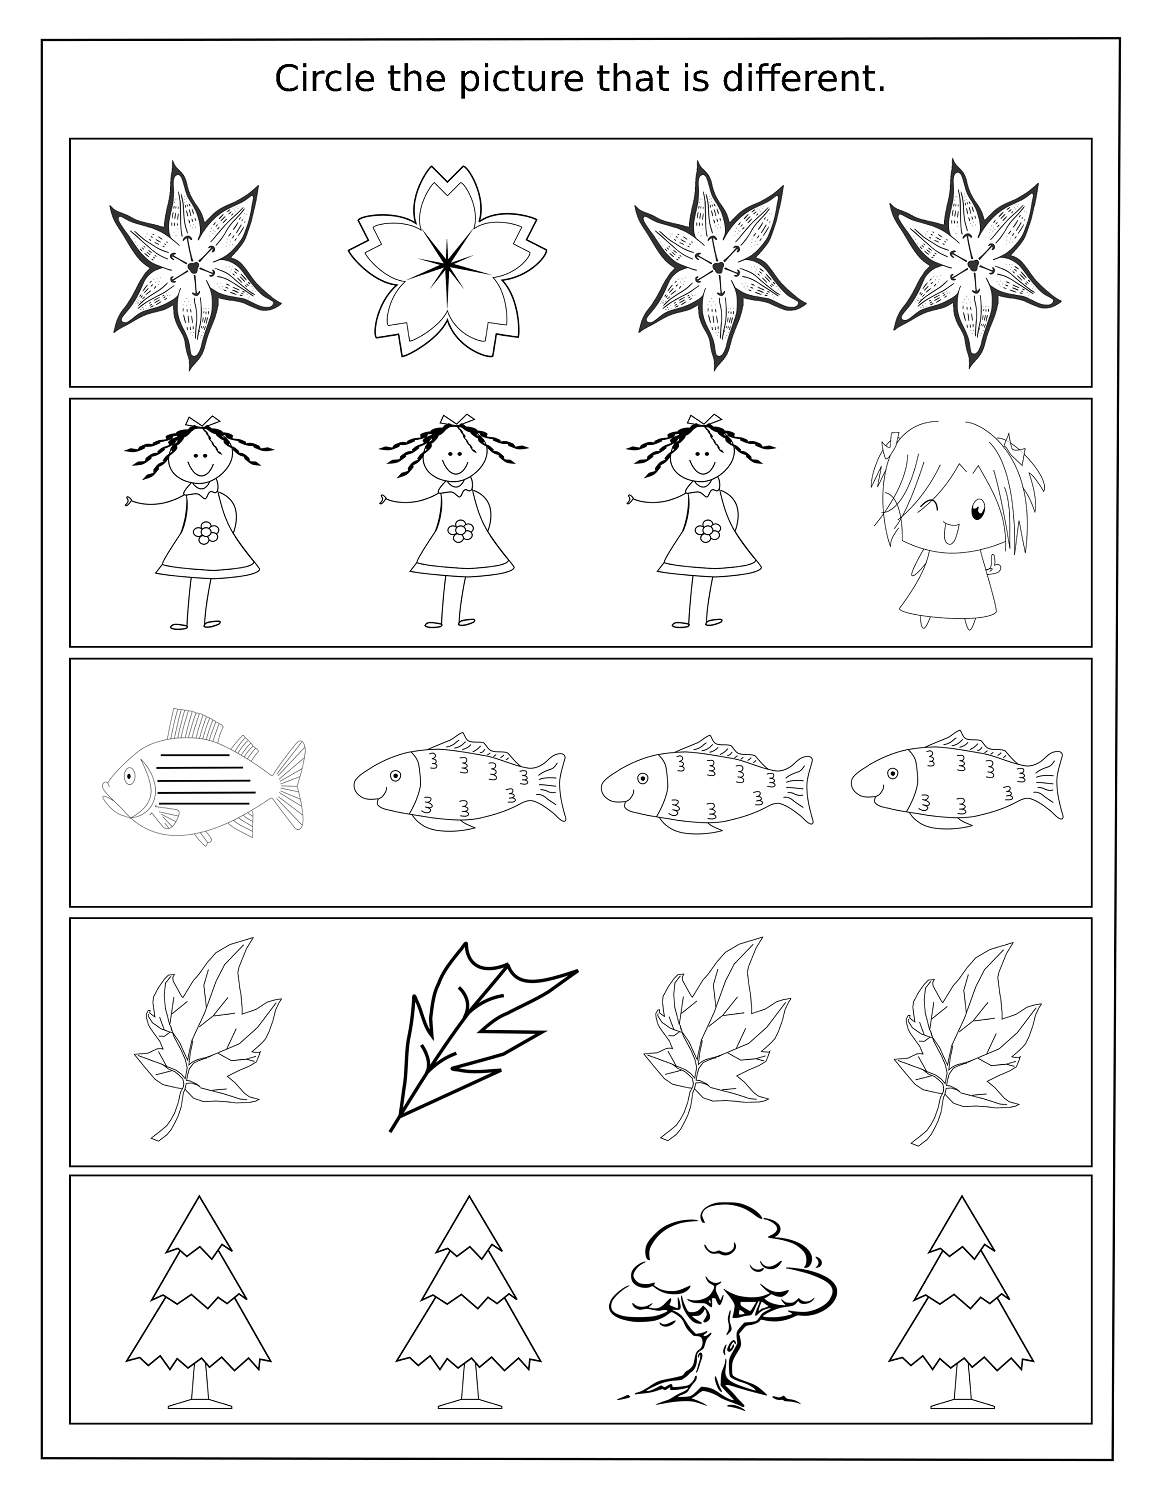 same-and-different-worksheets-kinderganten